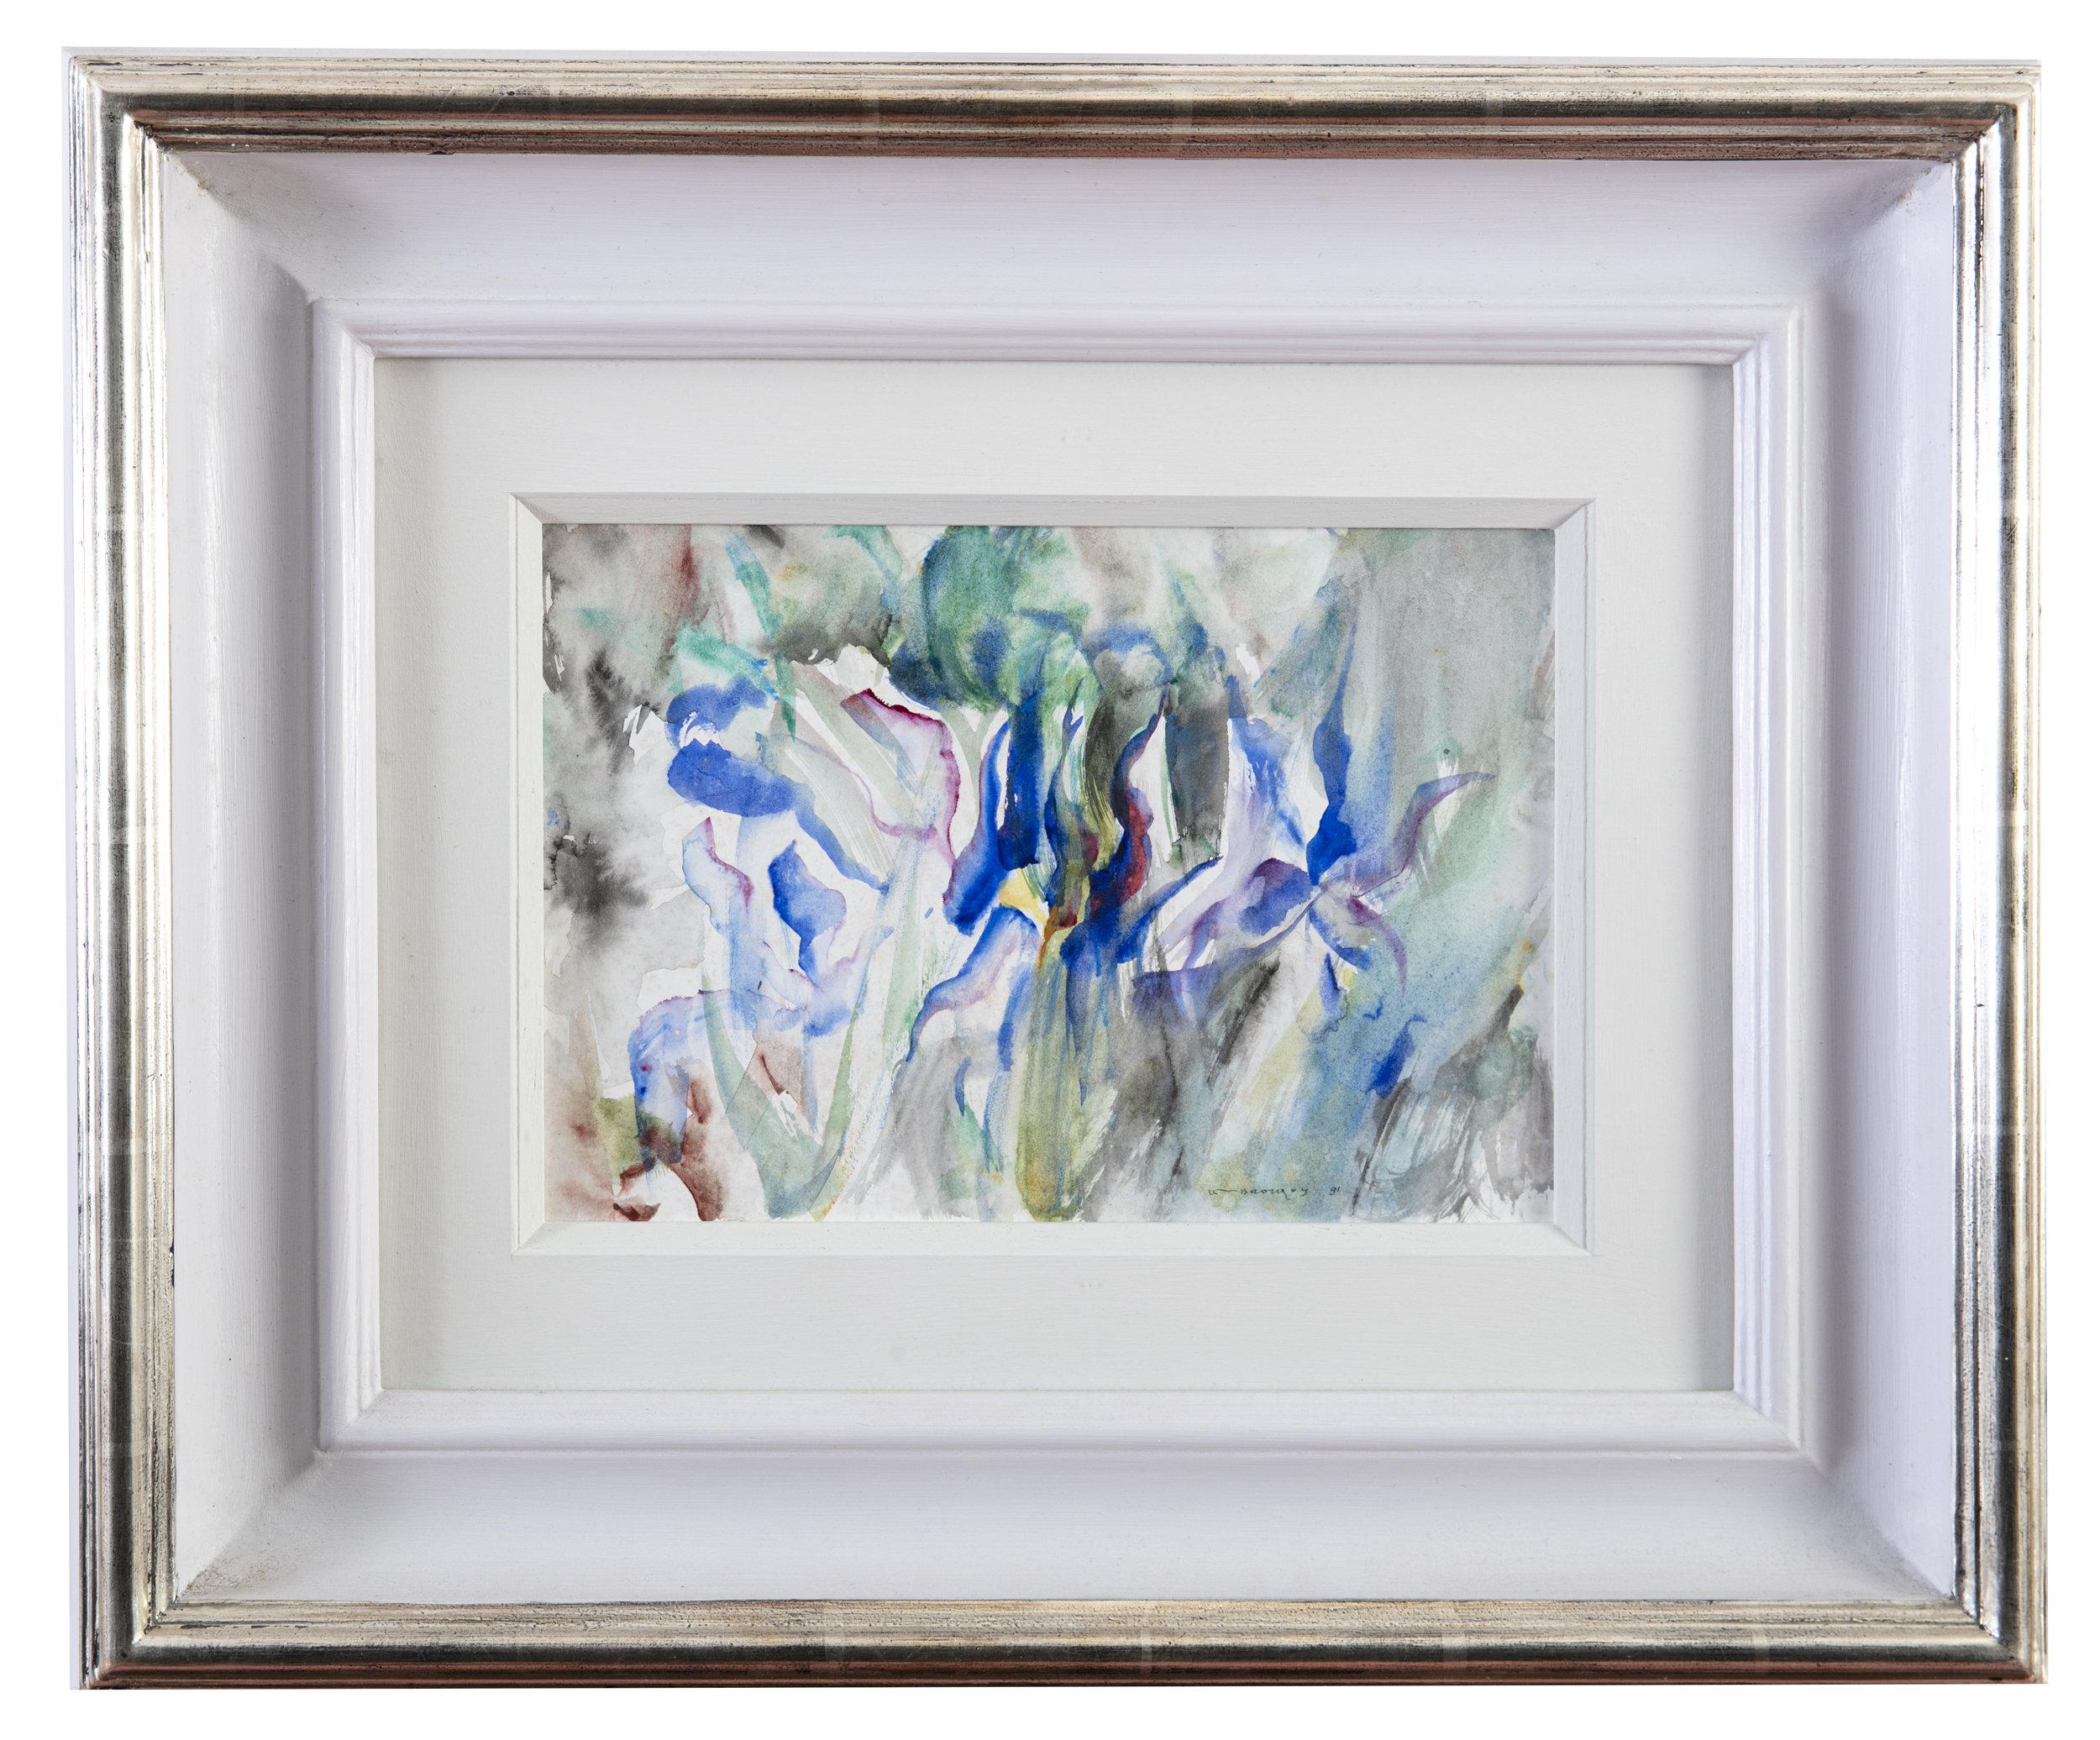 Lot 25 - Louis le Brocquy HRHA (1916-2012)IrisWatercolour, 17 x 25cm (6½ x 9¾)Signed and dated (19)'